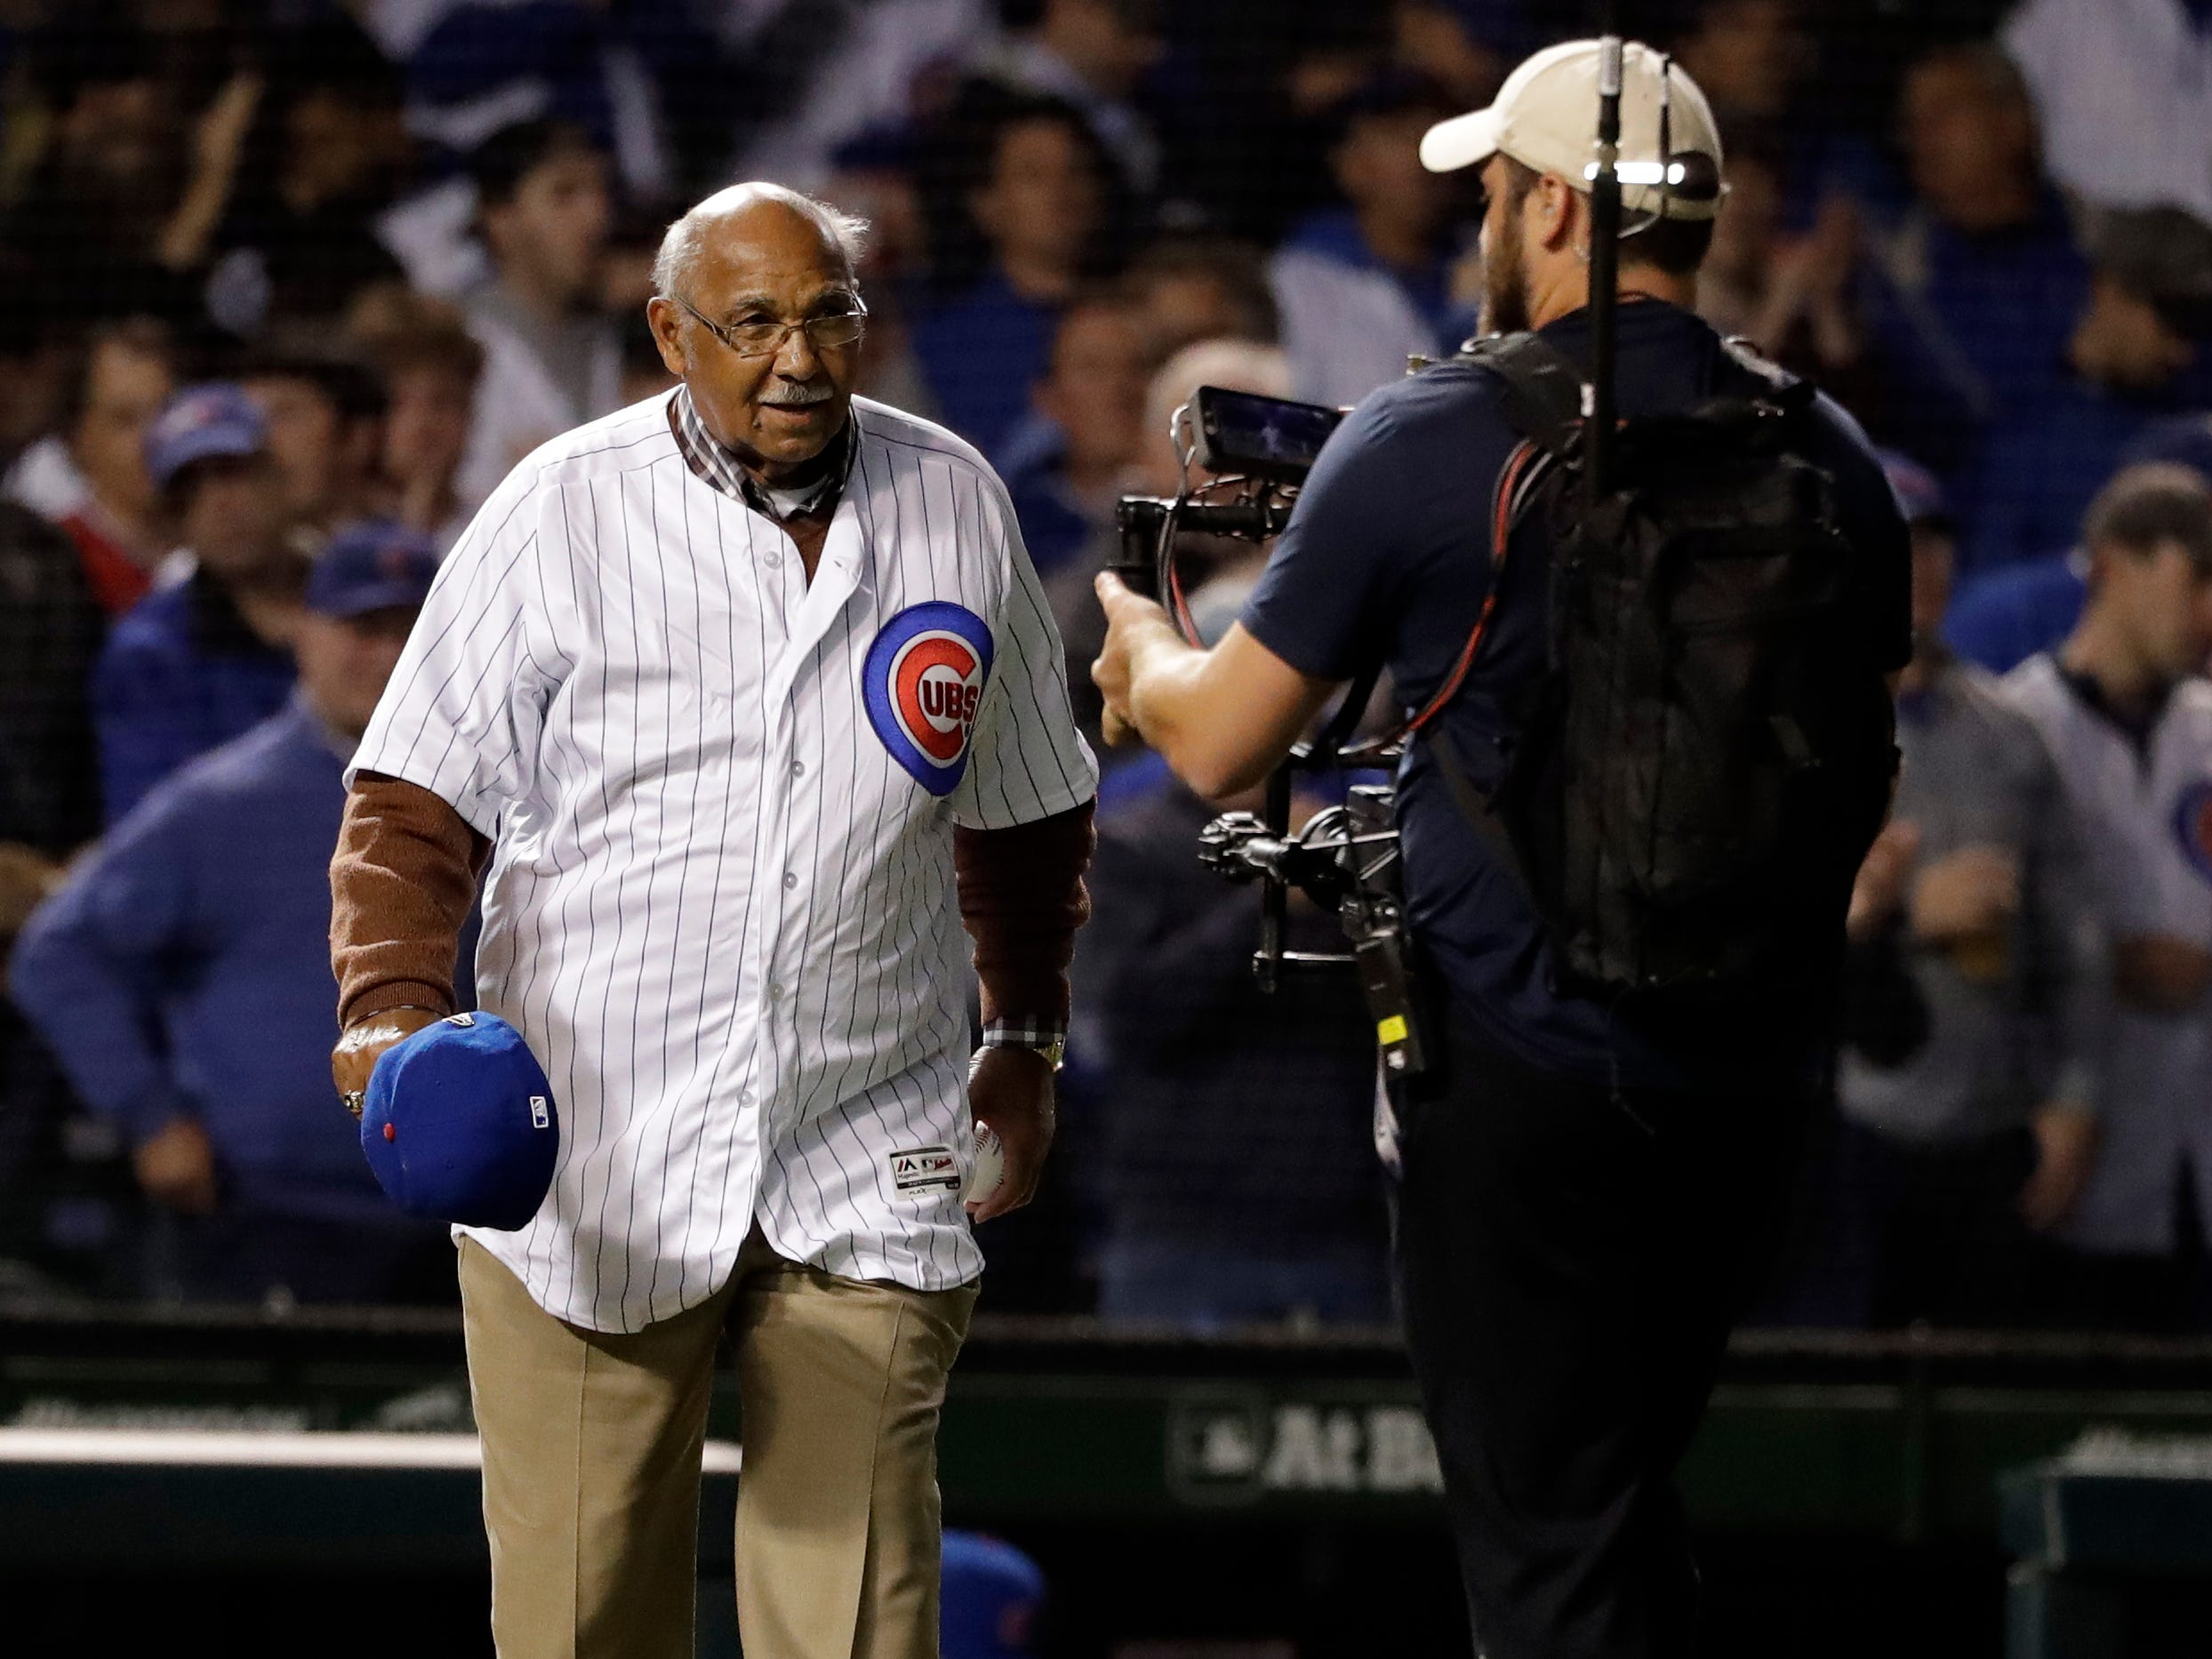 Former Chicago Cubs player Billy Williams walks on the field before throwing the ceremonial first pitch before the National League wild-card playoff baseball game between the Colorado Rockies and the Chicago Cubs, Tuesday, Oct. 2, 2018, in Chicago.